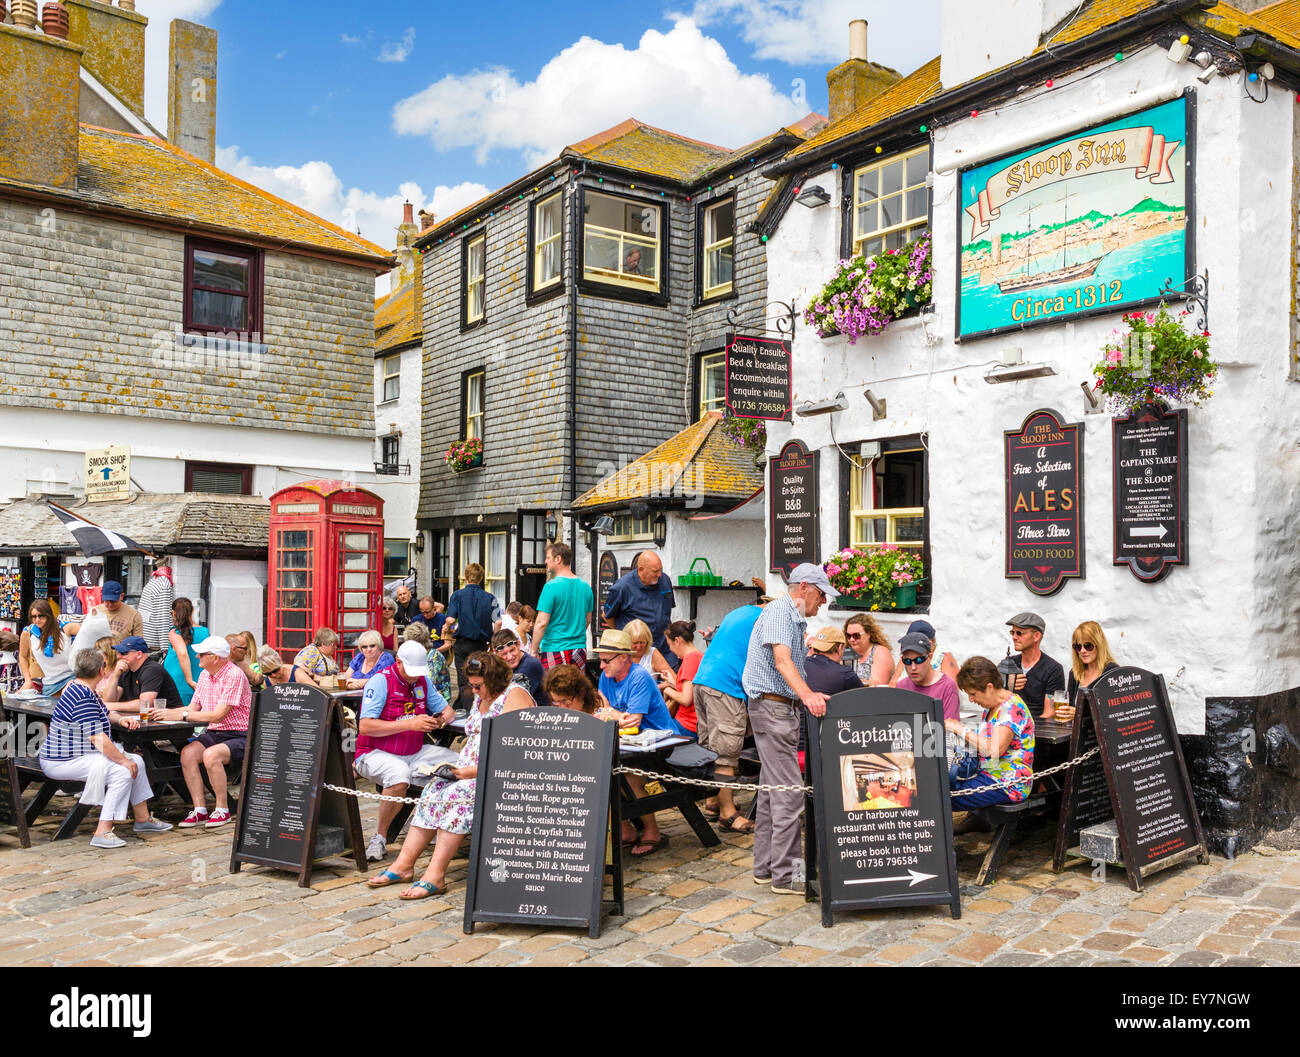 People sitting outside the historic Sloop in on the seafront, Wharf Road, St Ives, Cornwall, England, UK - Stock Image